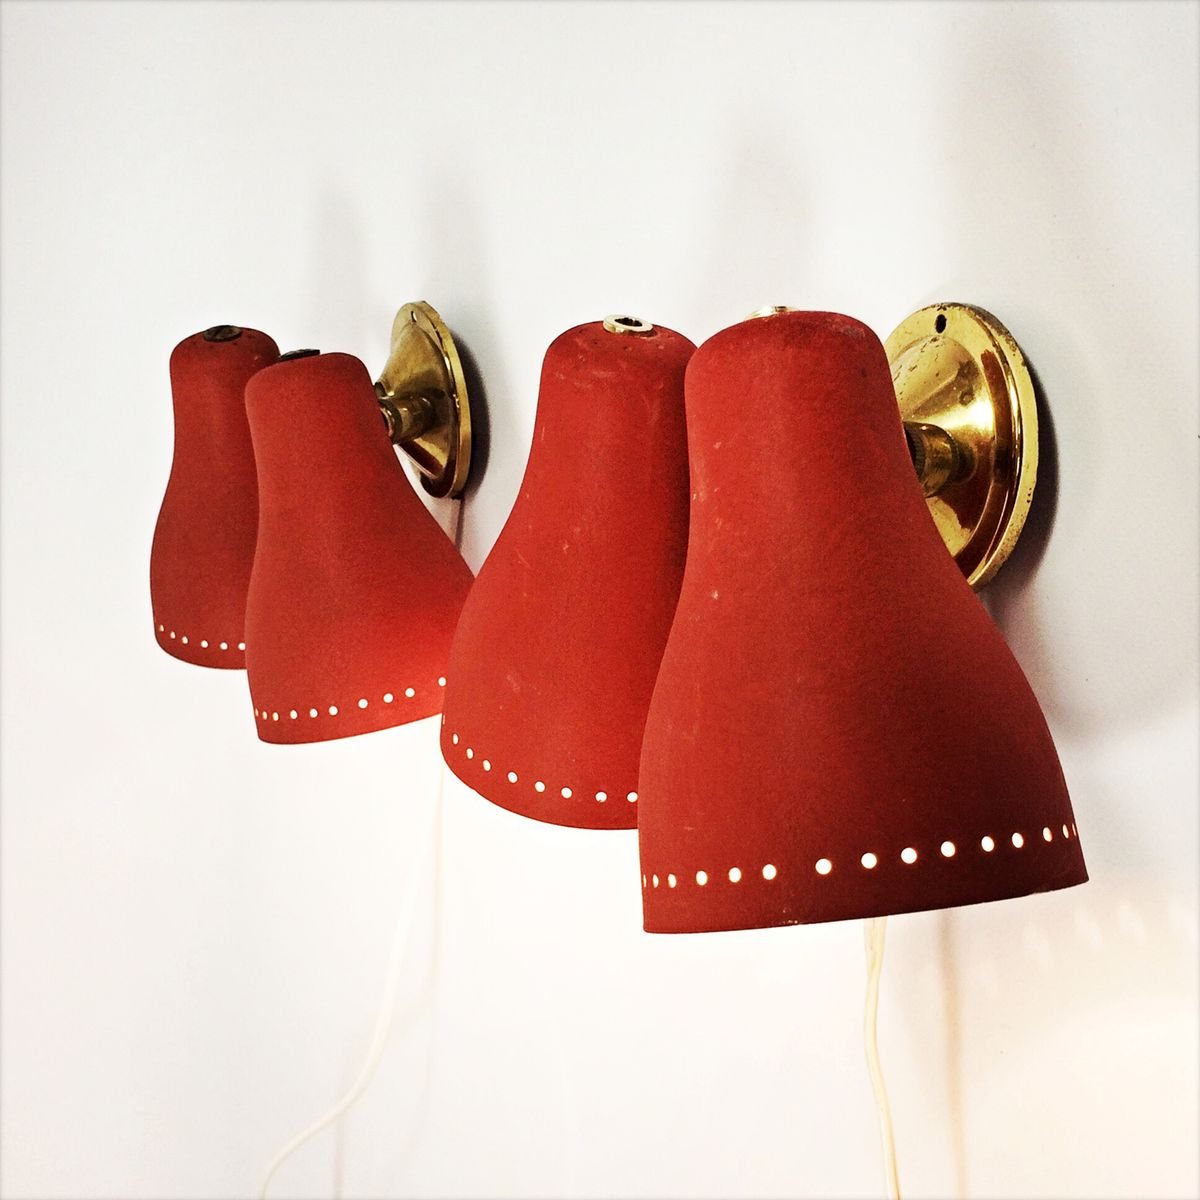 Wall Mount Lamp Set : Double-Shaded Wall-Mounted Lamps, Set of 2 for sale at Pamono